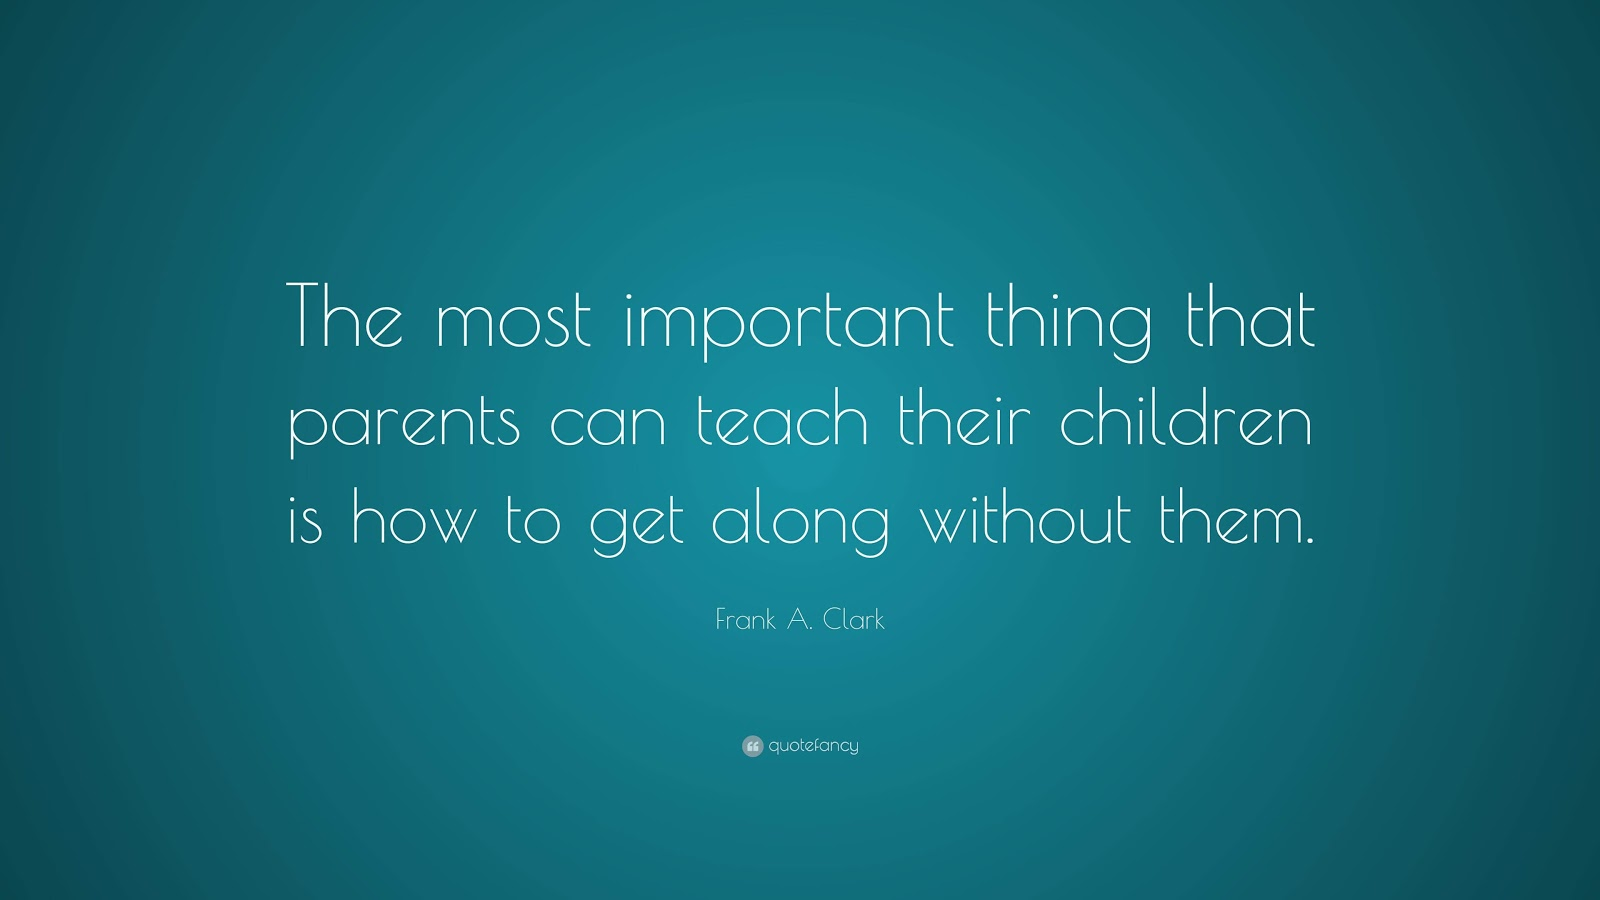 The most important thing that parents can teach their children is how to get along without them.